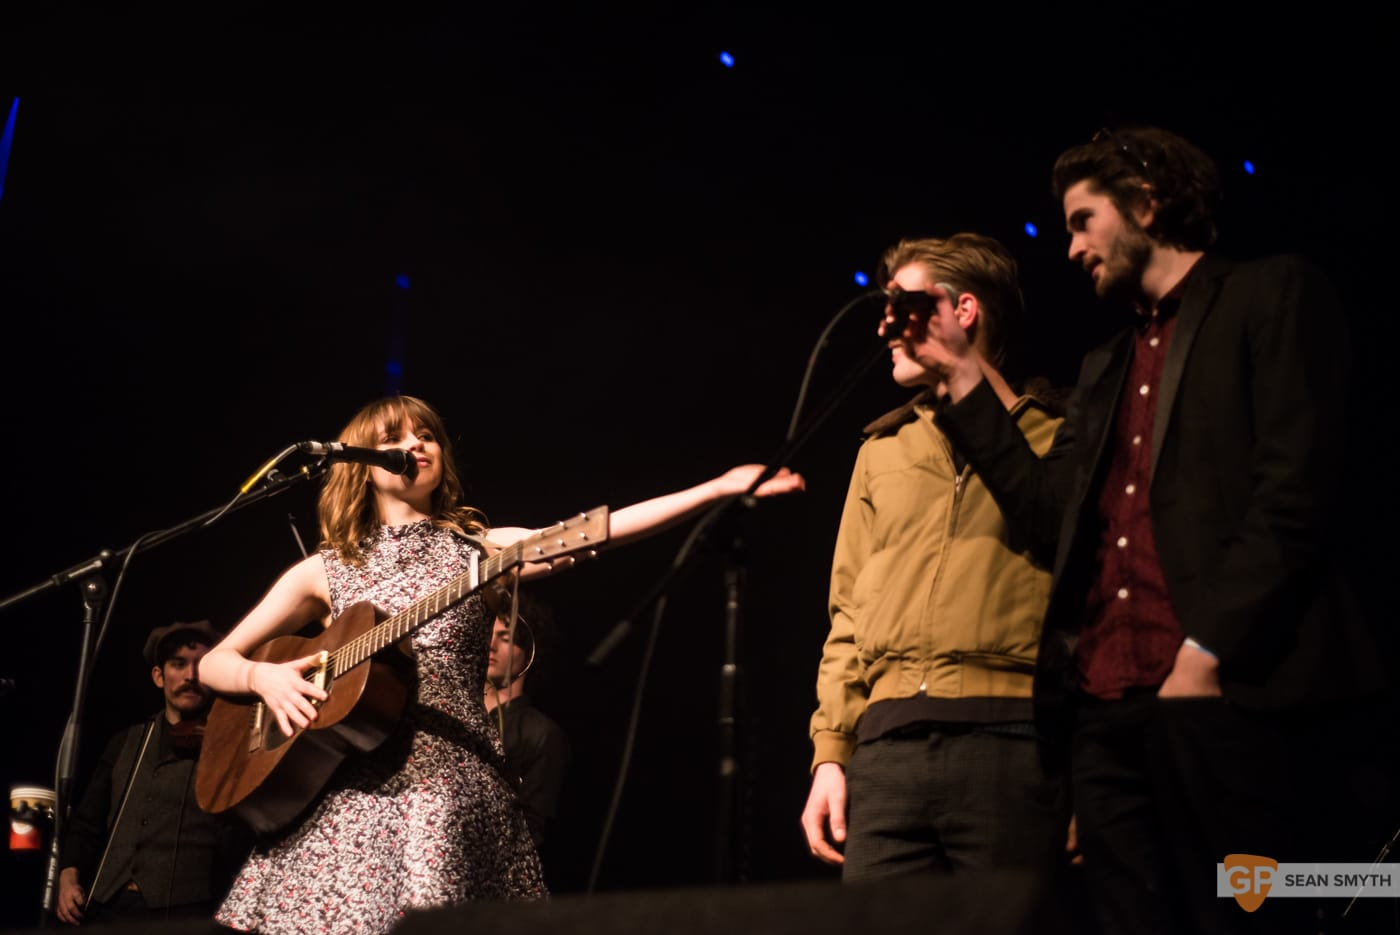 Gabrielle Aplin at the Olympia Theatre by Sean Smyth (20-2-15) (15 of 28)